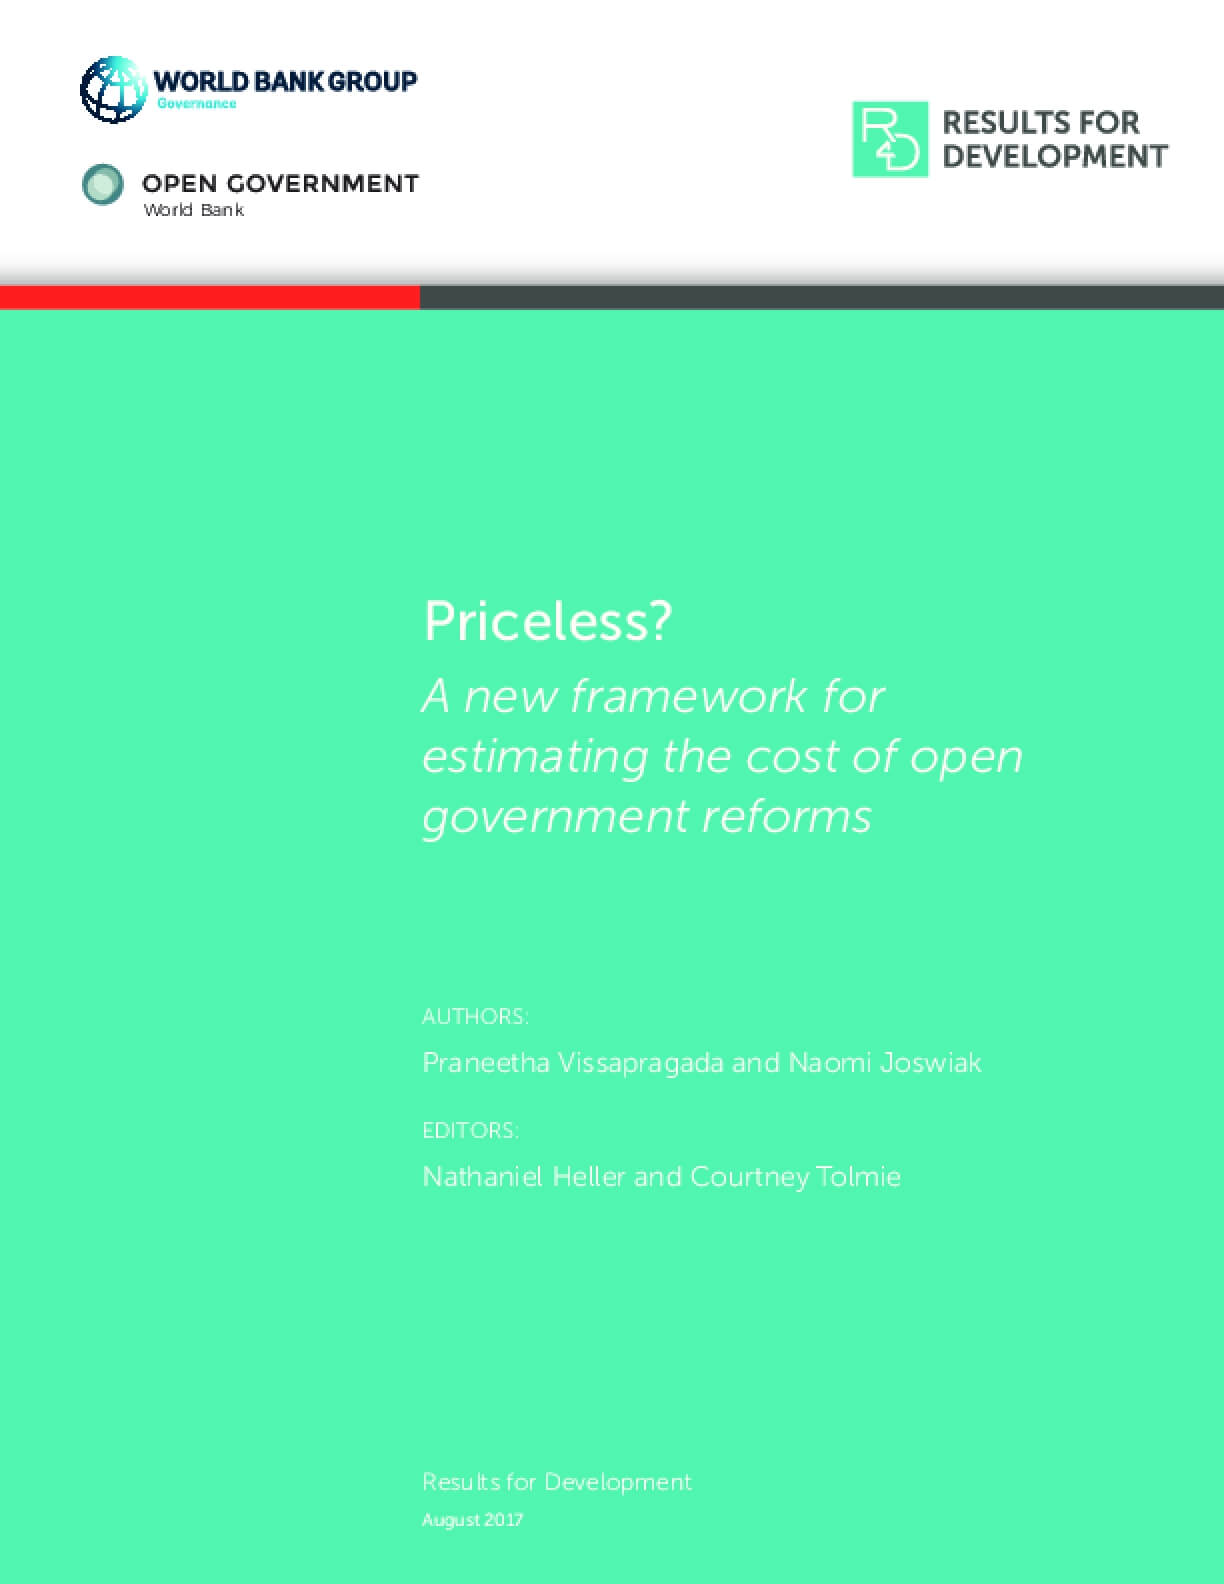 Priceless? A New Framework for Estimating the Cost of Open Government Reforms